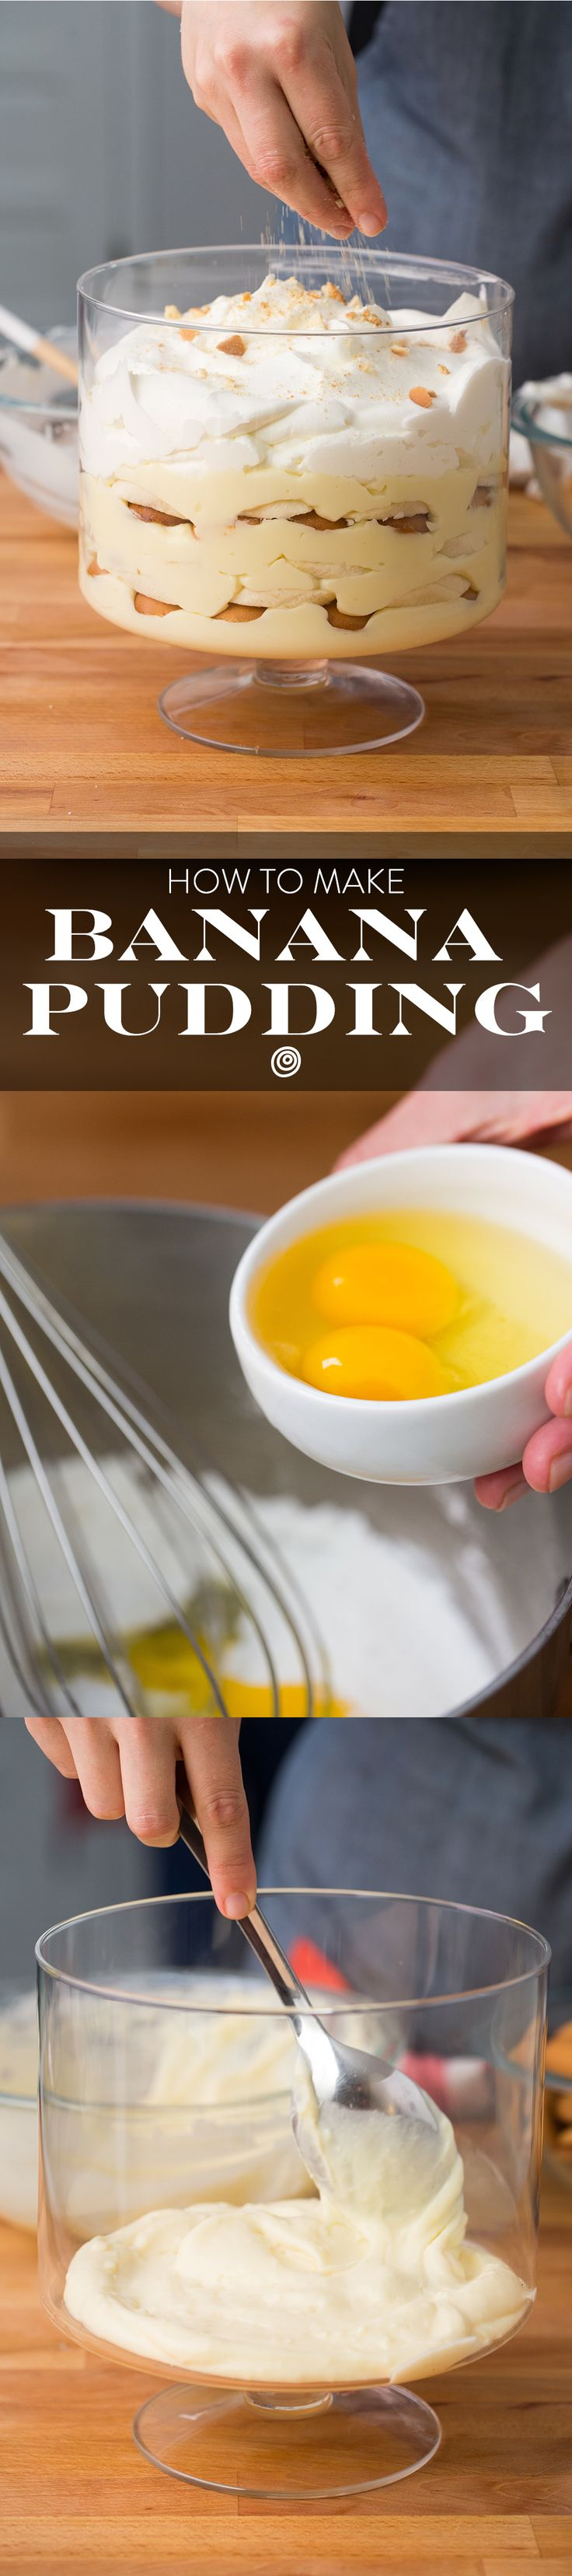 We make this Classic, From Scratch, Southern Banana Pudding EASY with this step by step recipe. It's very pantry friendly with a custard calling for milk, eggs, and other pantry staples, so it's one of those awesome recipes to have up your sleeve as desserts for last-minute guests.